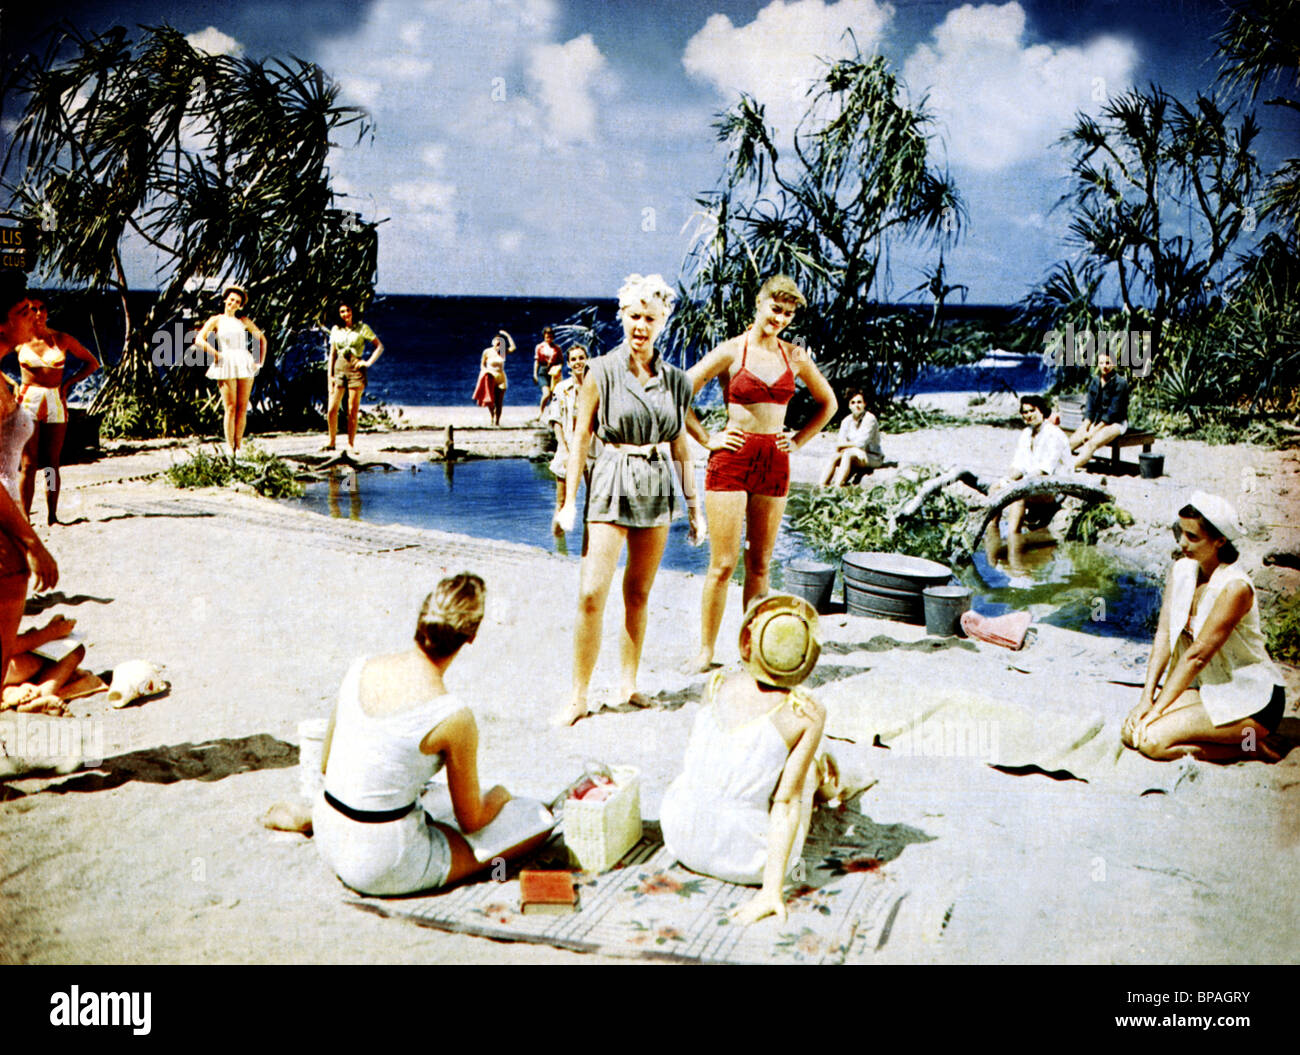 SCENE WITH MITZI GAYNOR SOUTH PACIFIC (1958) - Stock Image